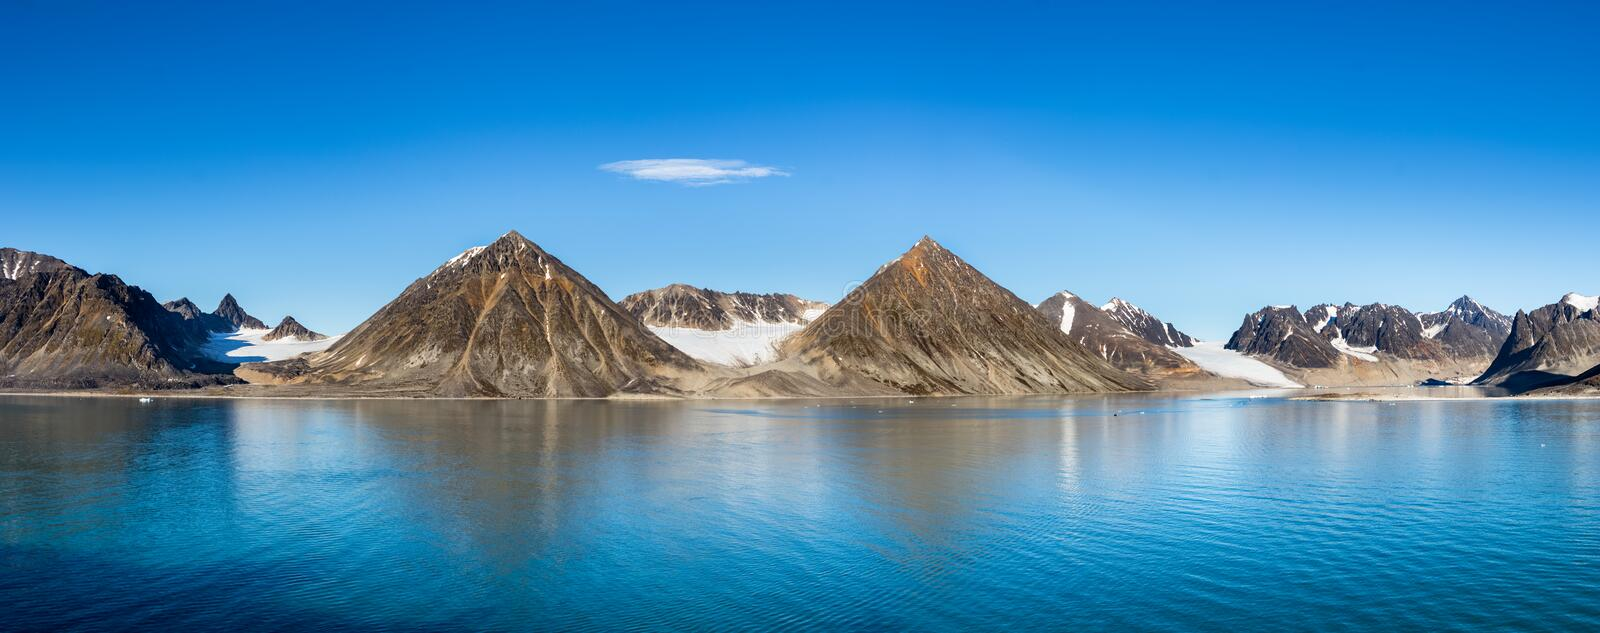 Smeerenburg bay and glaciers in Spitsbergen islands, Svalbard, Norway. Panoramic view of the Smeerenburg bay and glaciers in Spitsbergen islands, Svalbard stock photography